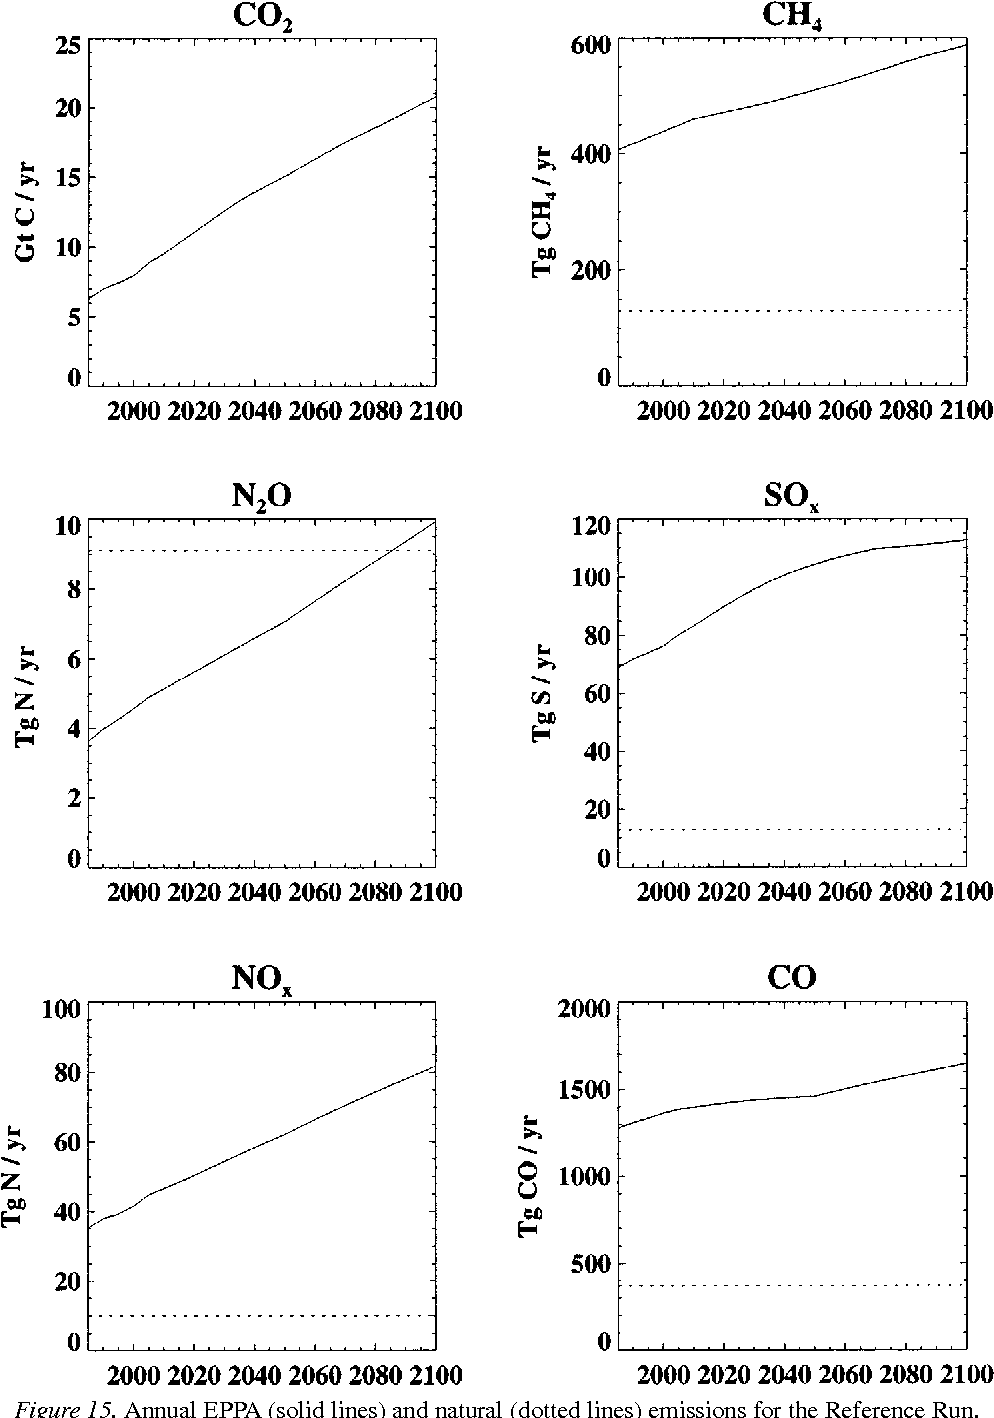 Figure 15. Annual EPPA (solid lines) and natural (dotted lines) emissions for the Reference Run.